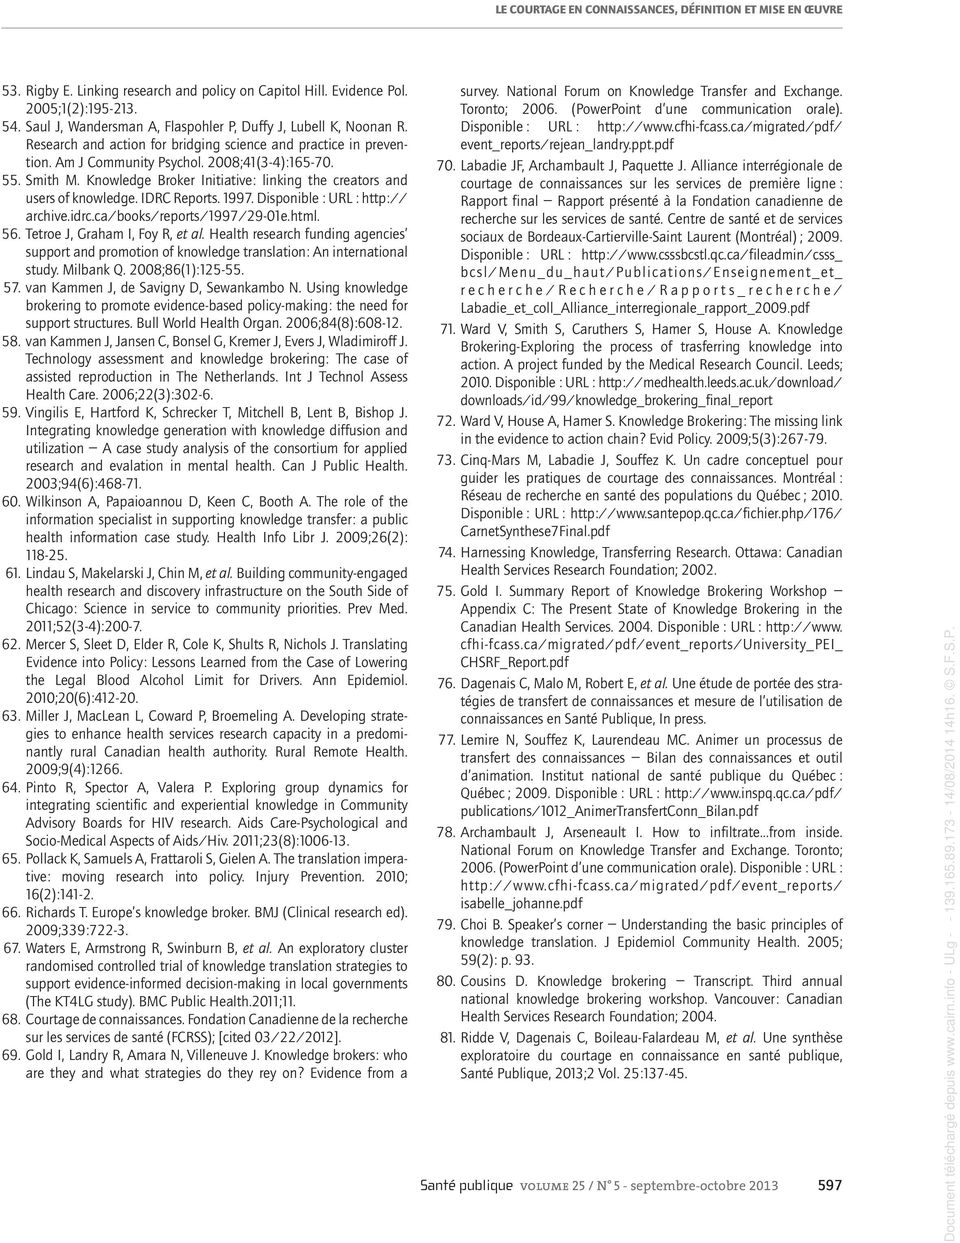 Knowledge Broker Initiative: linking the creators and users of knowledge. IDRC Reports. 1997. Disponible : URL : http:// archive.idrc.ca/books/reports/1997/29-01e.html. 56.